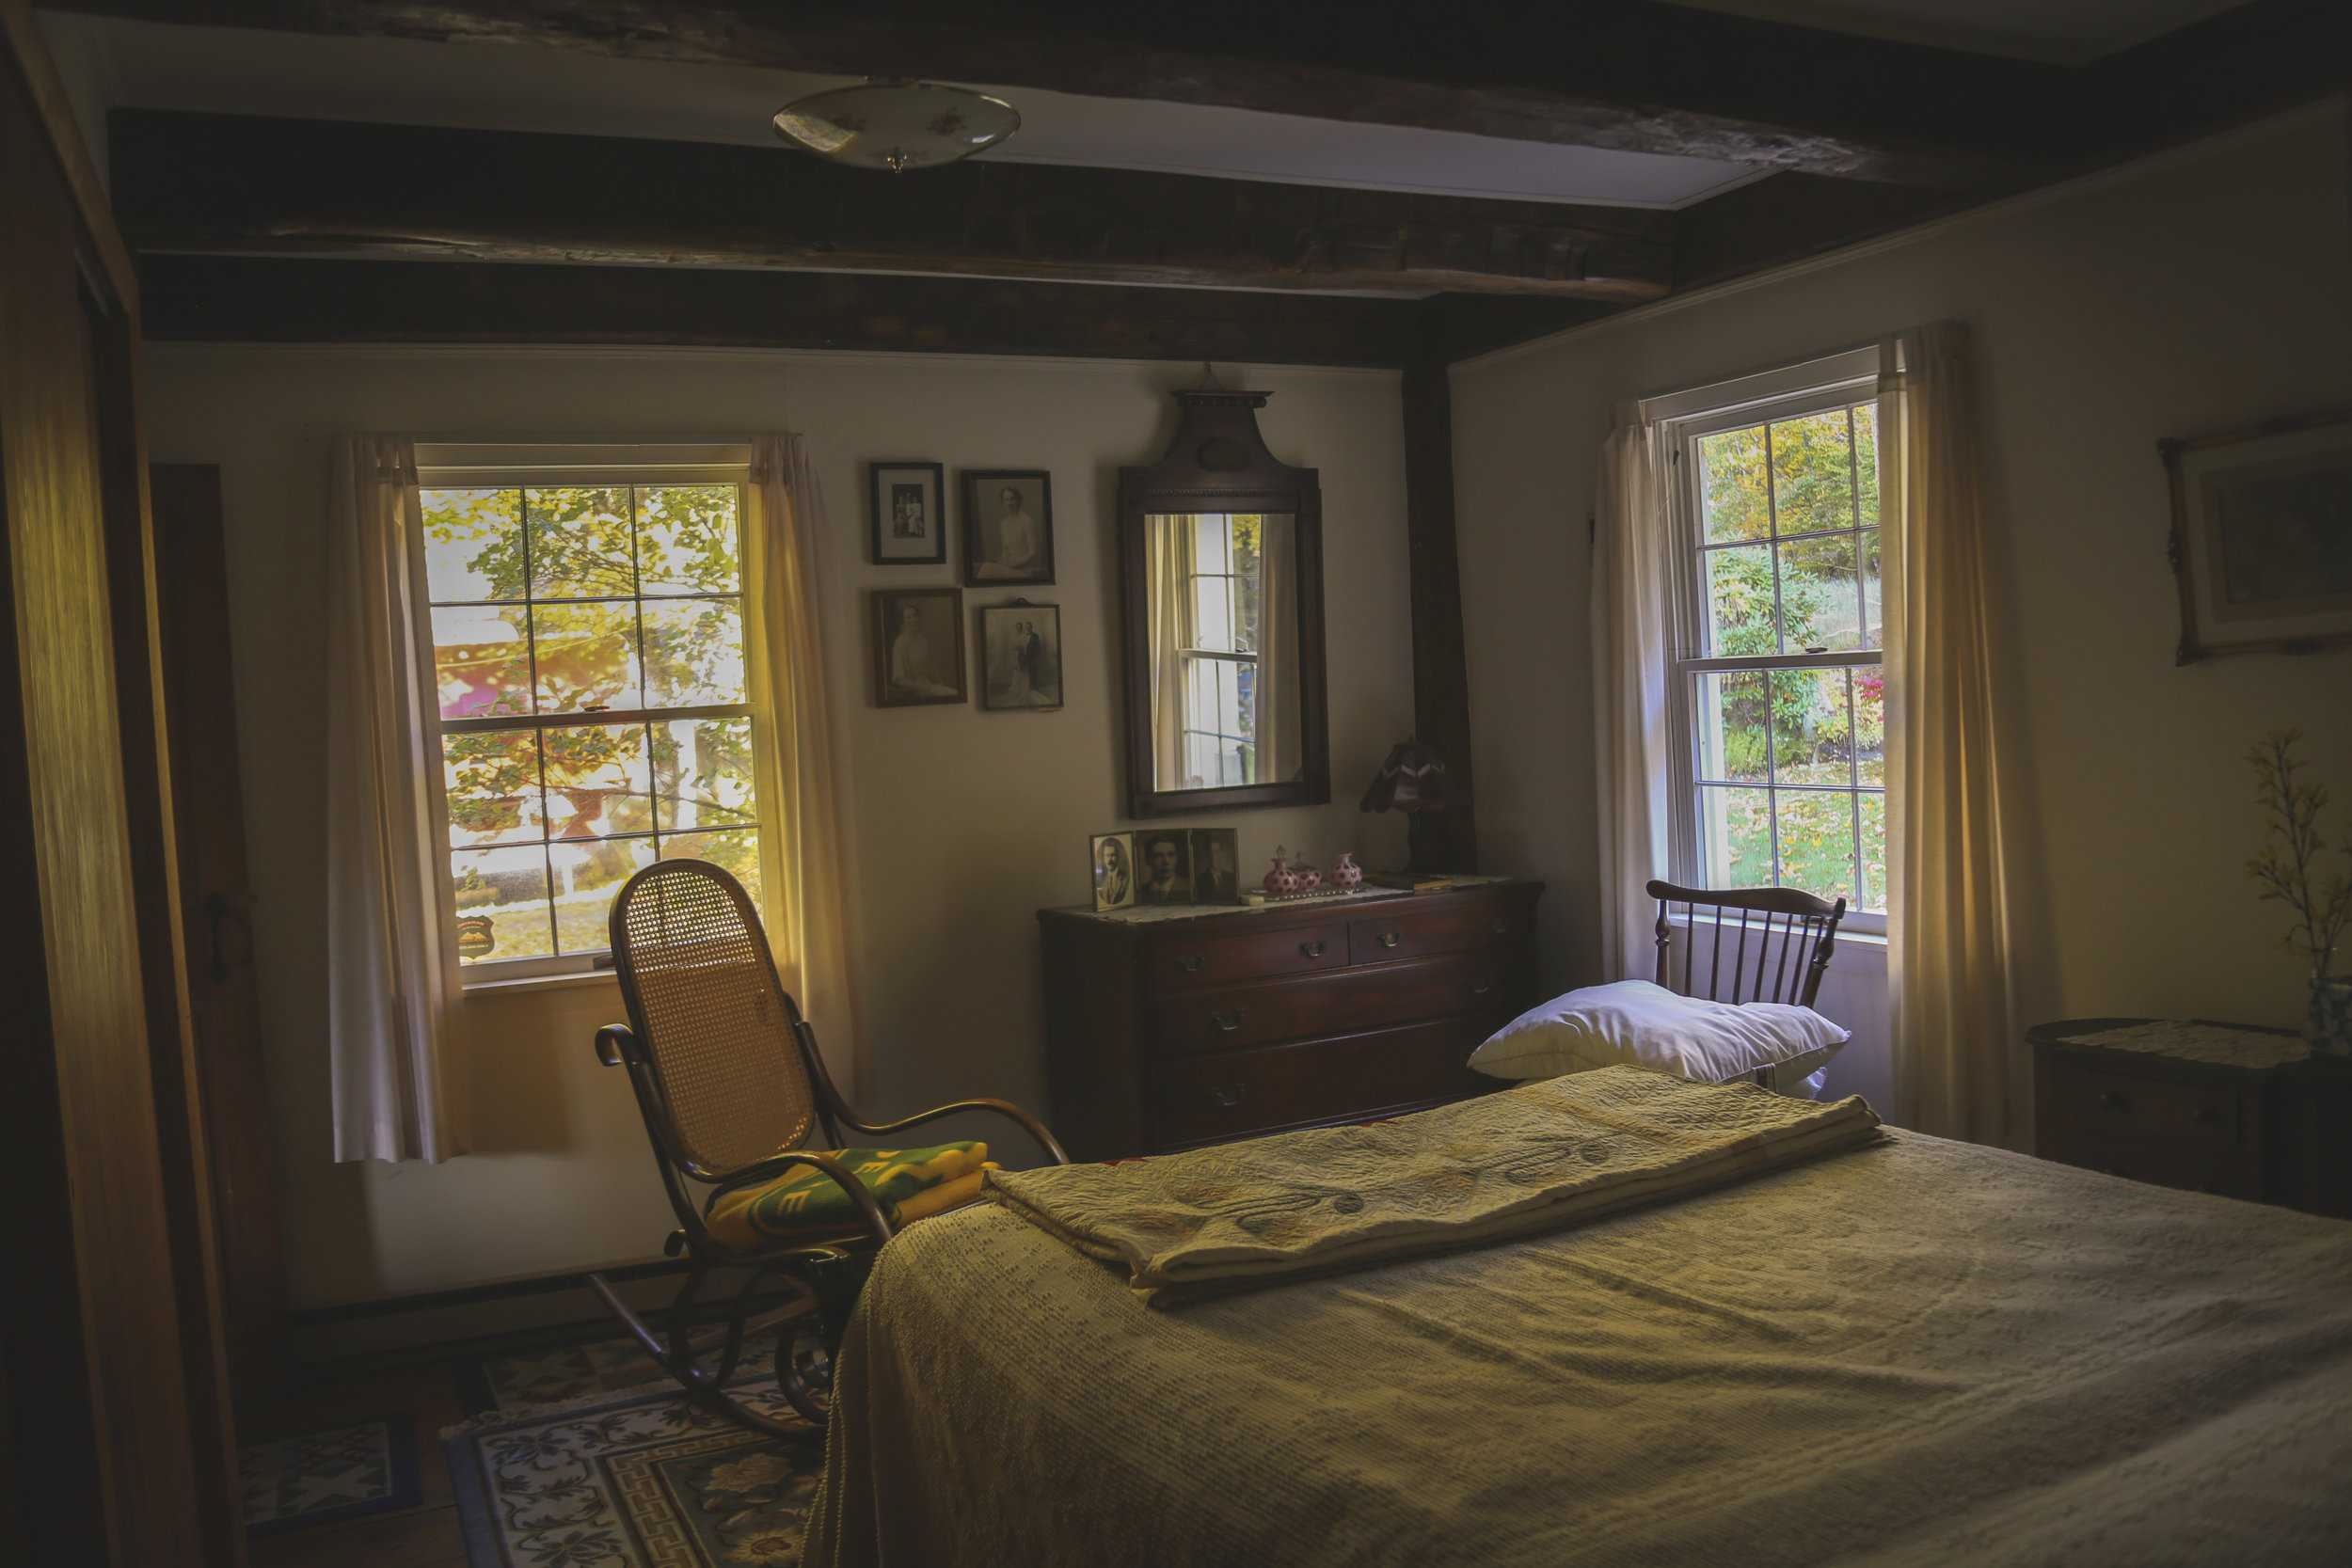 """One of the rooms that gave me the """"spooks"""" throughout my life. My great grandparents bedroom.The walls hold framed faces of past family members."""